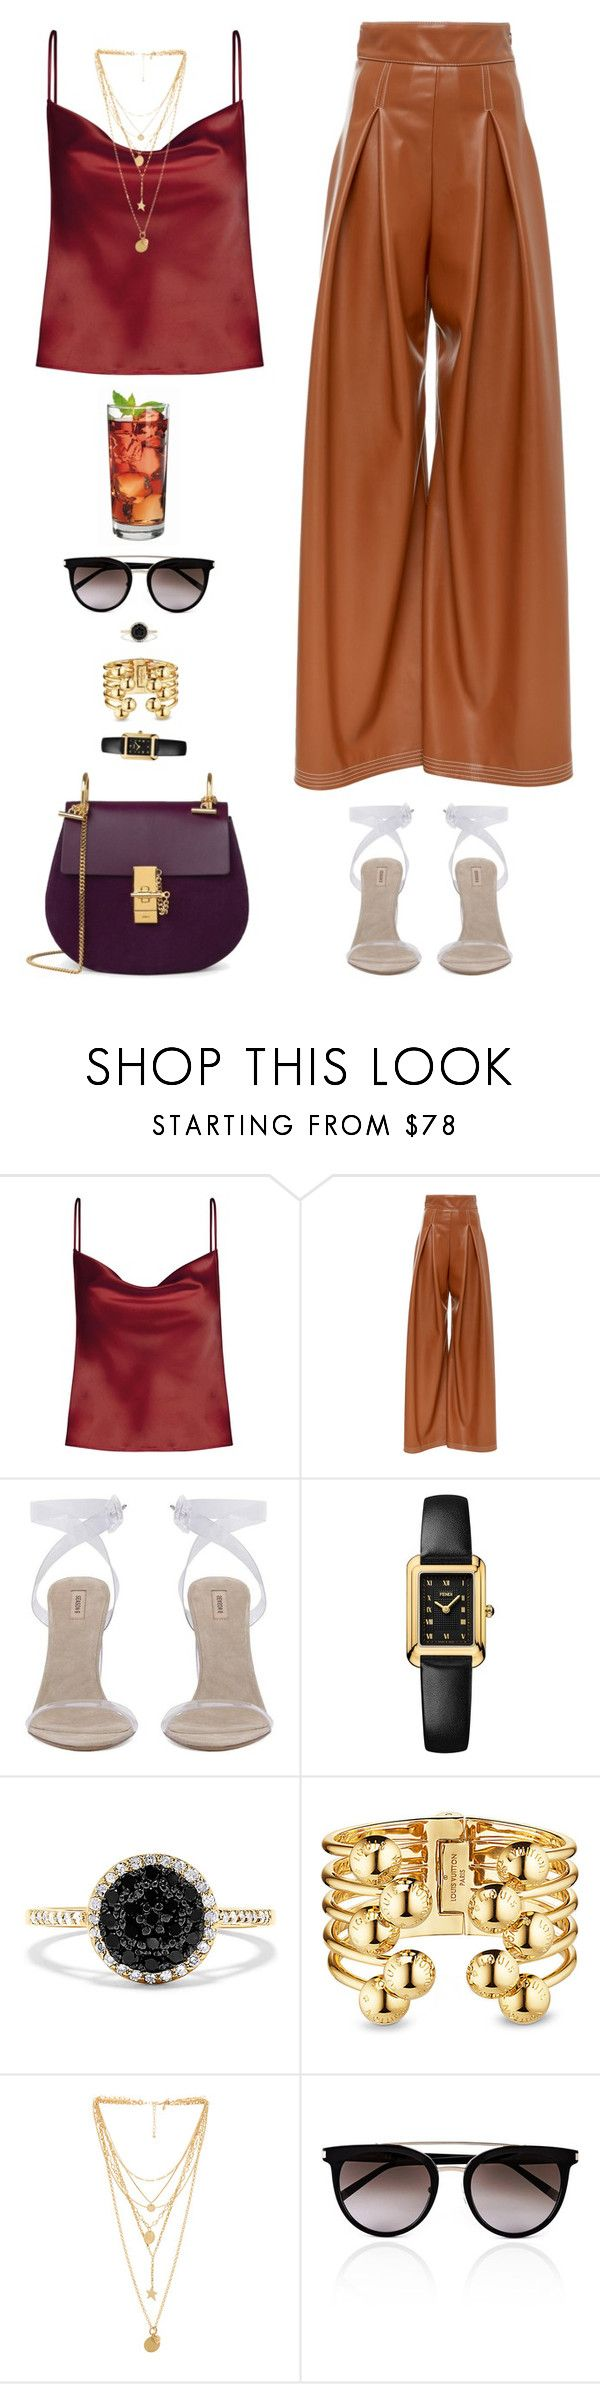 """""""LA"""" by xoxomuty on Polyvore featuring Fendi, Effy Jewelry, Rebecca Minkoff, Calvin Klein, Anchor Hocking, ootd and polyvoreOOTD"""